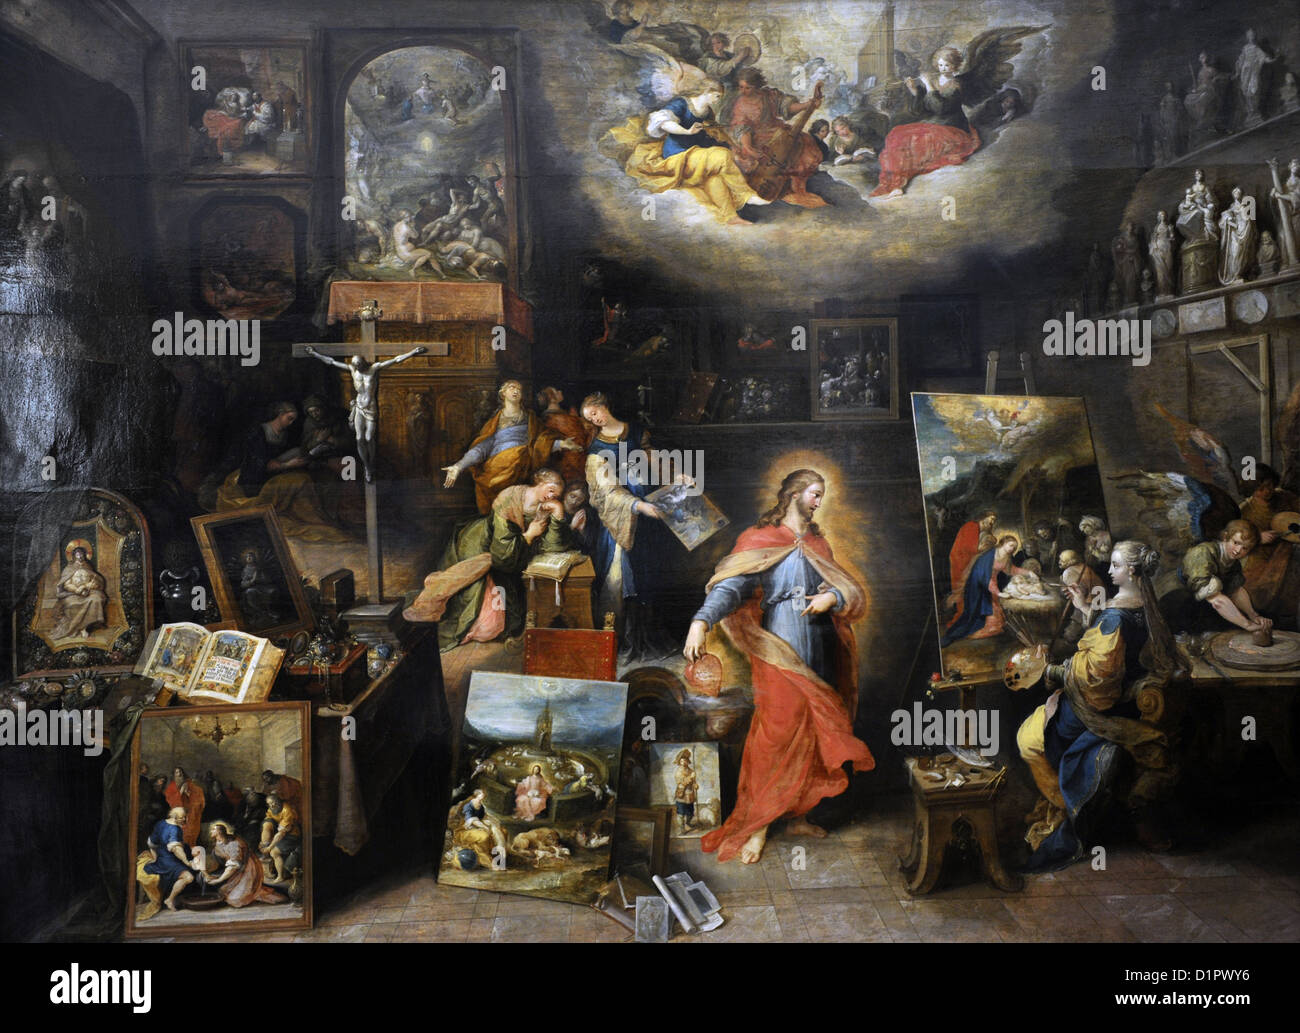 Frans Francken the Younger (1581-1642). Flemish painter. Christ in the Studio. Museum of Fine Arts. Budapest. Hungary. - Stock Image